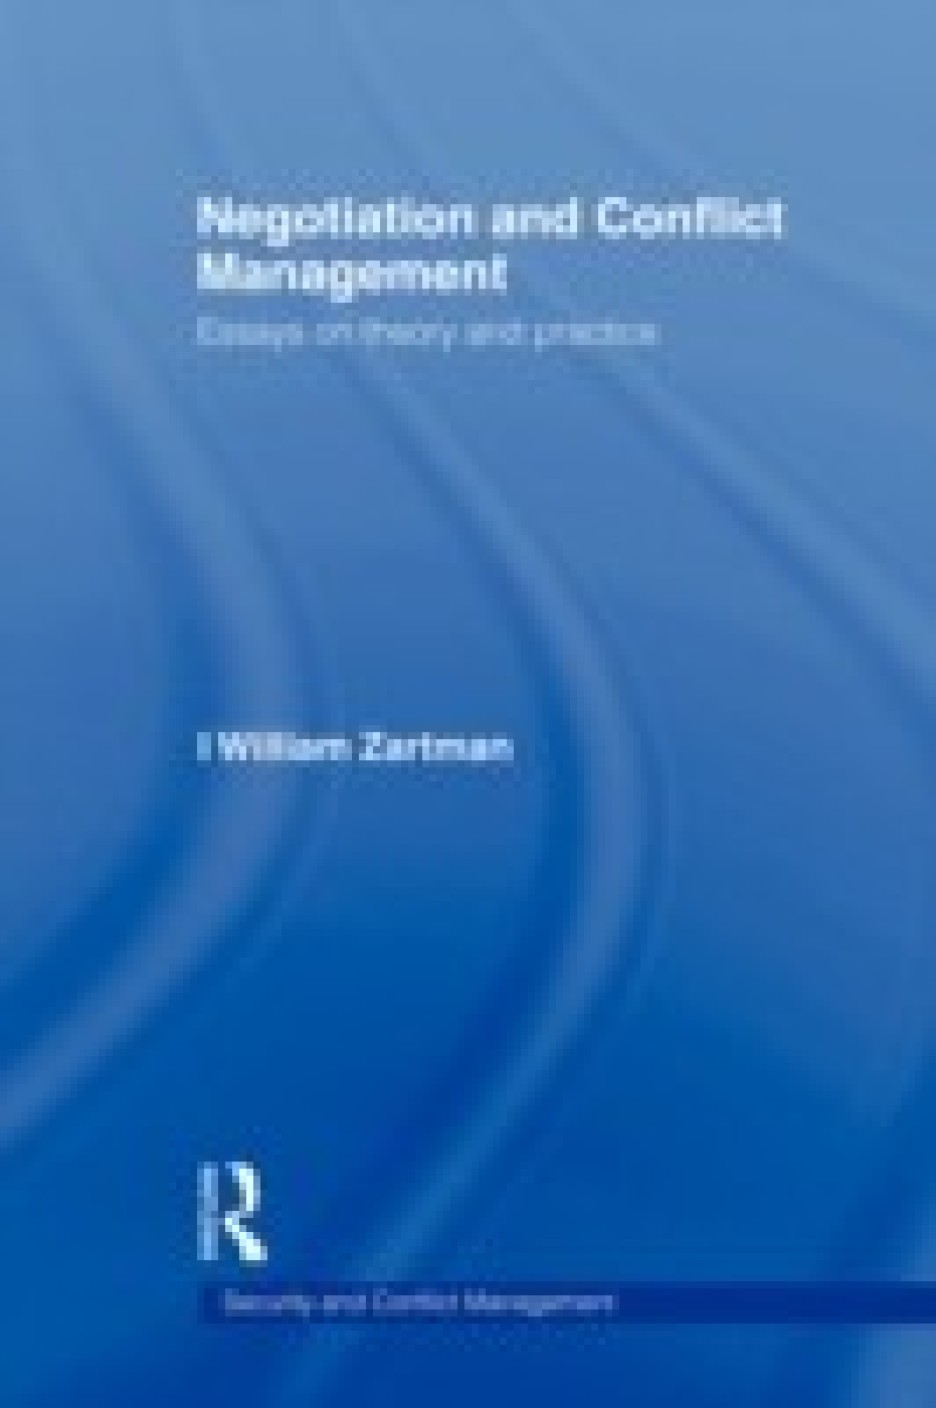 negotiation and conflict management essays on theory and practice add to cart